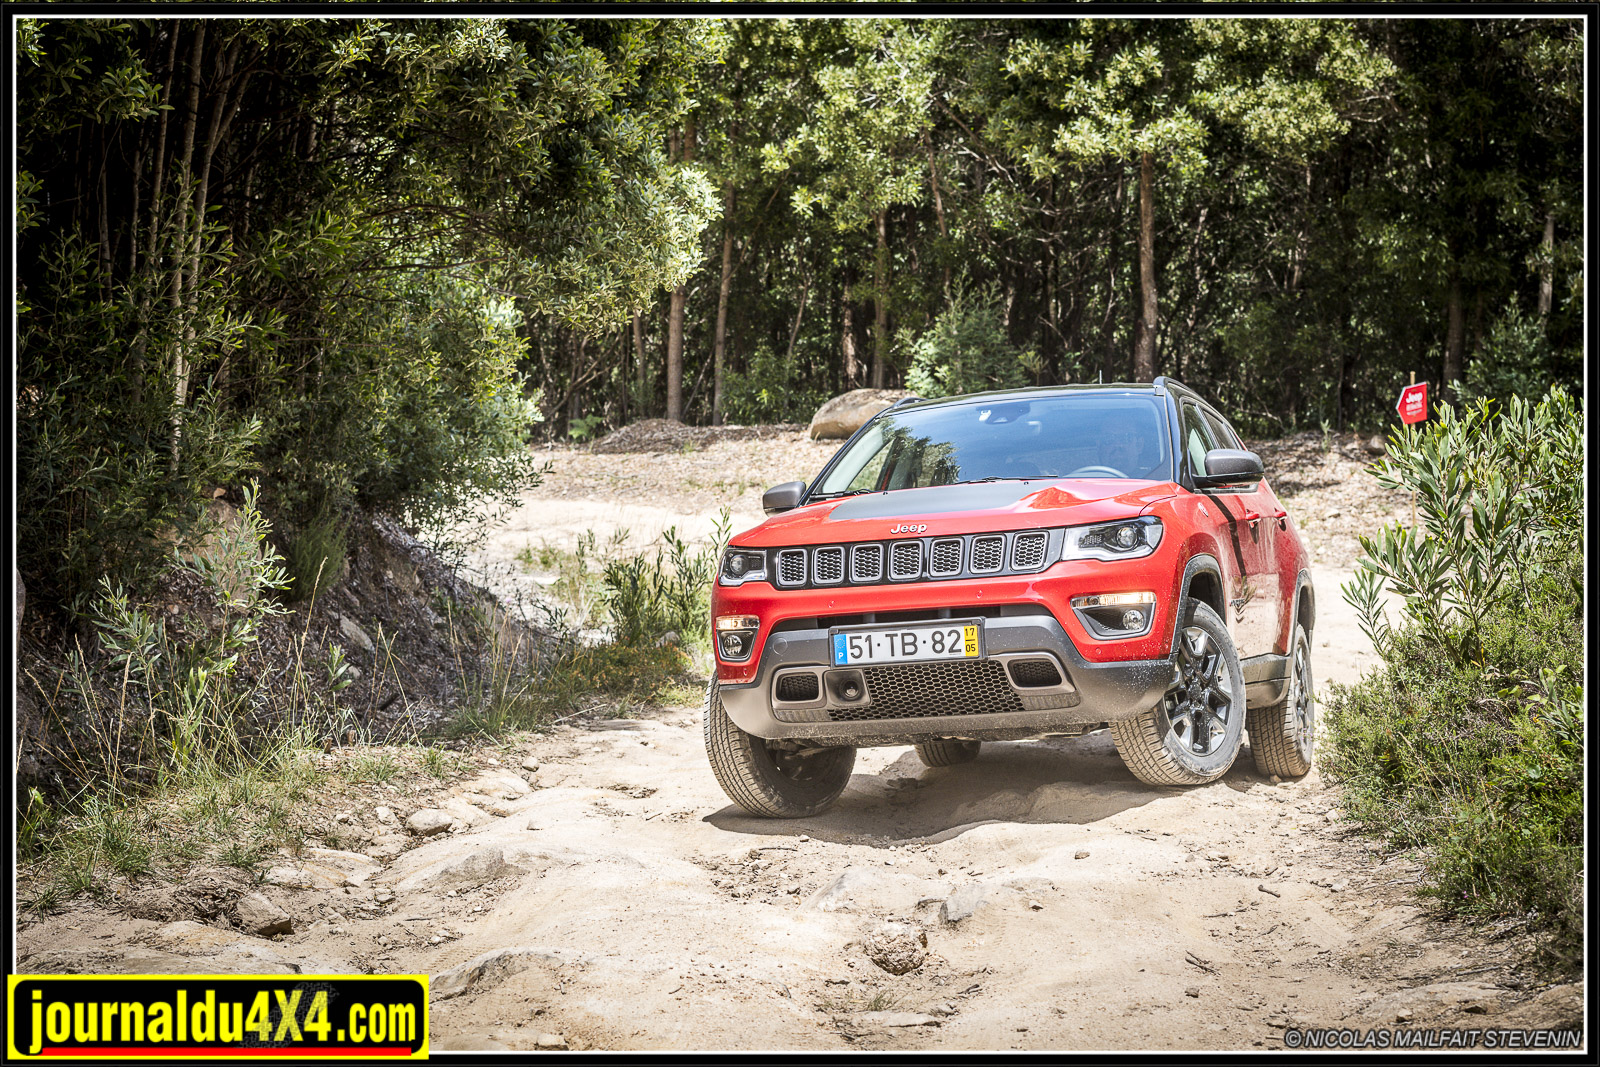 essai-test-jeep-compass-2017-5301.jpg